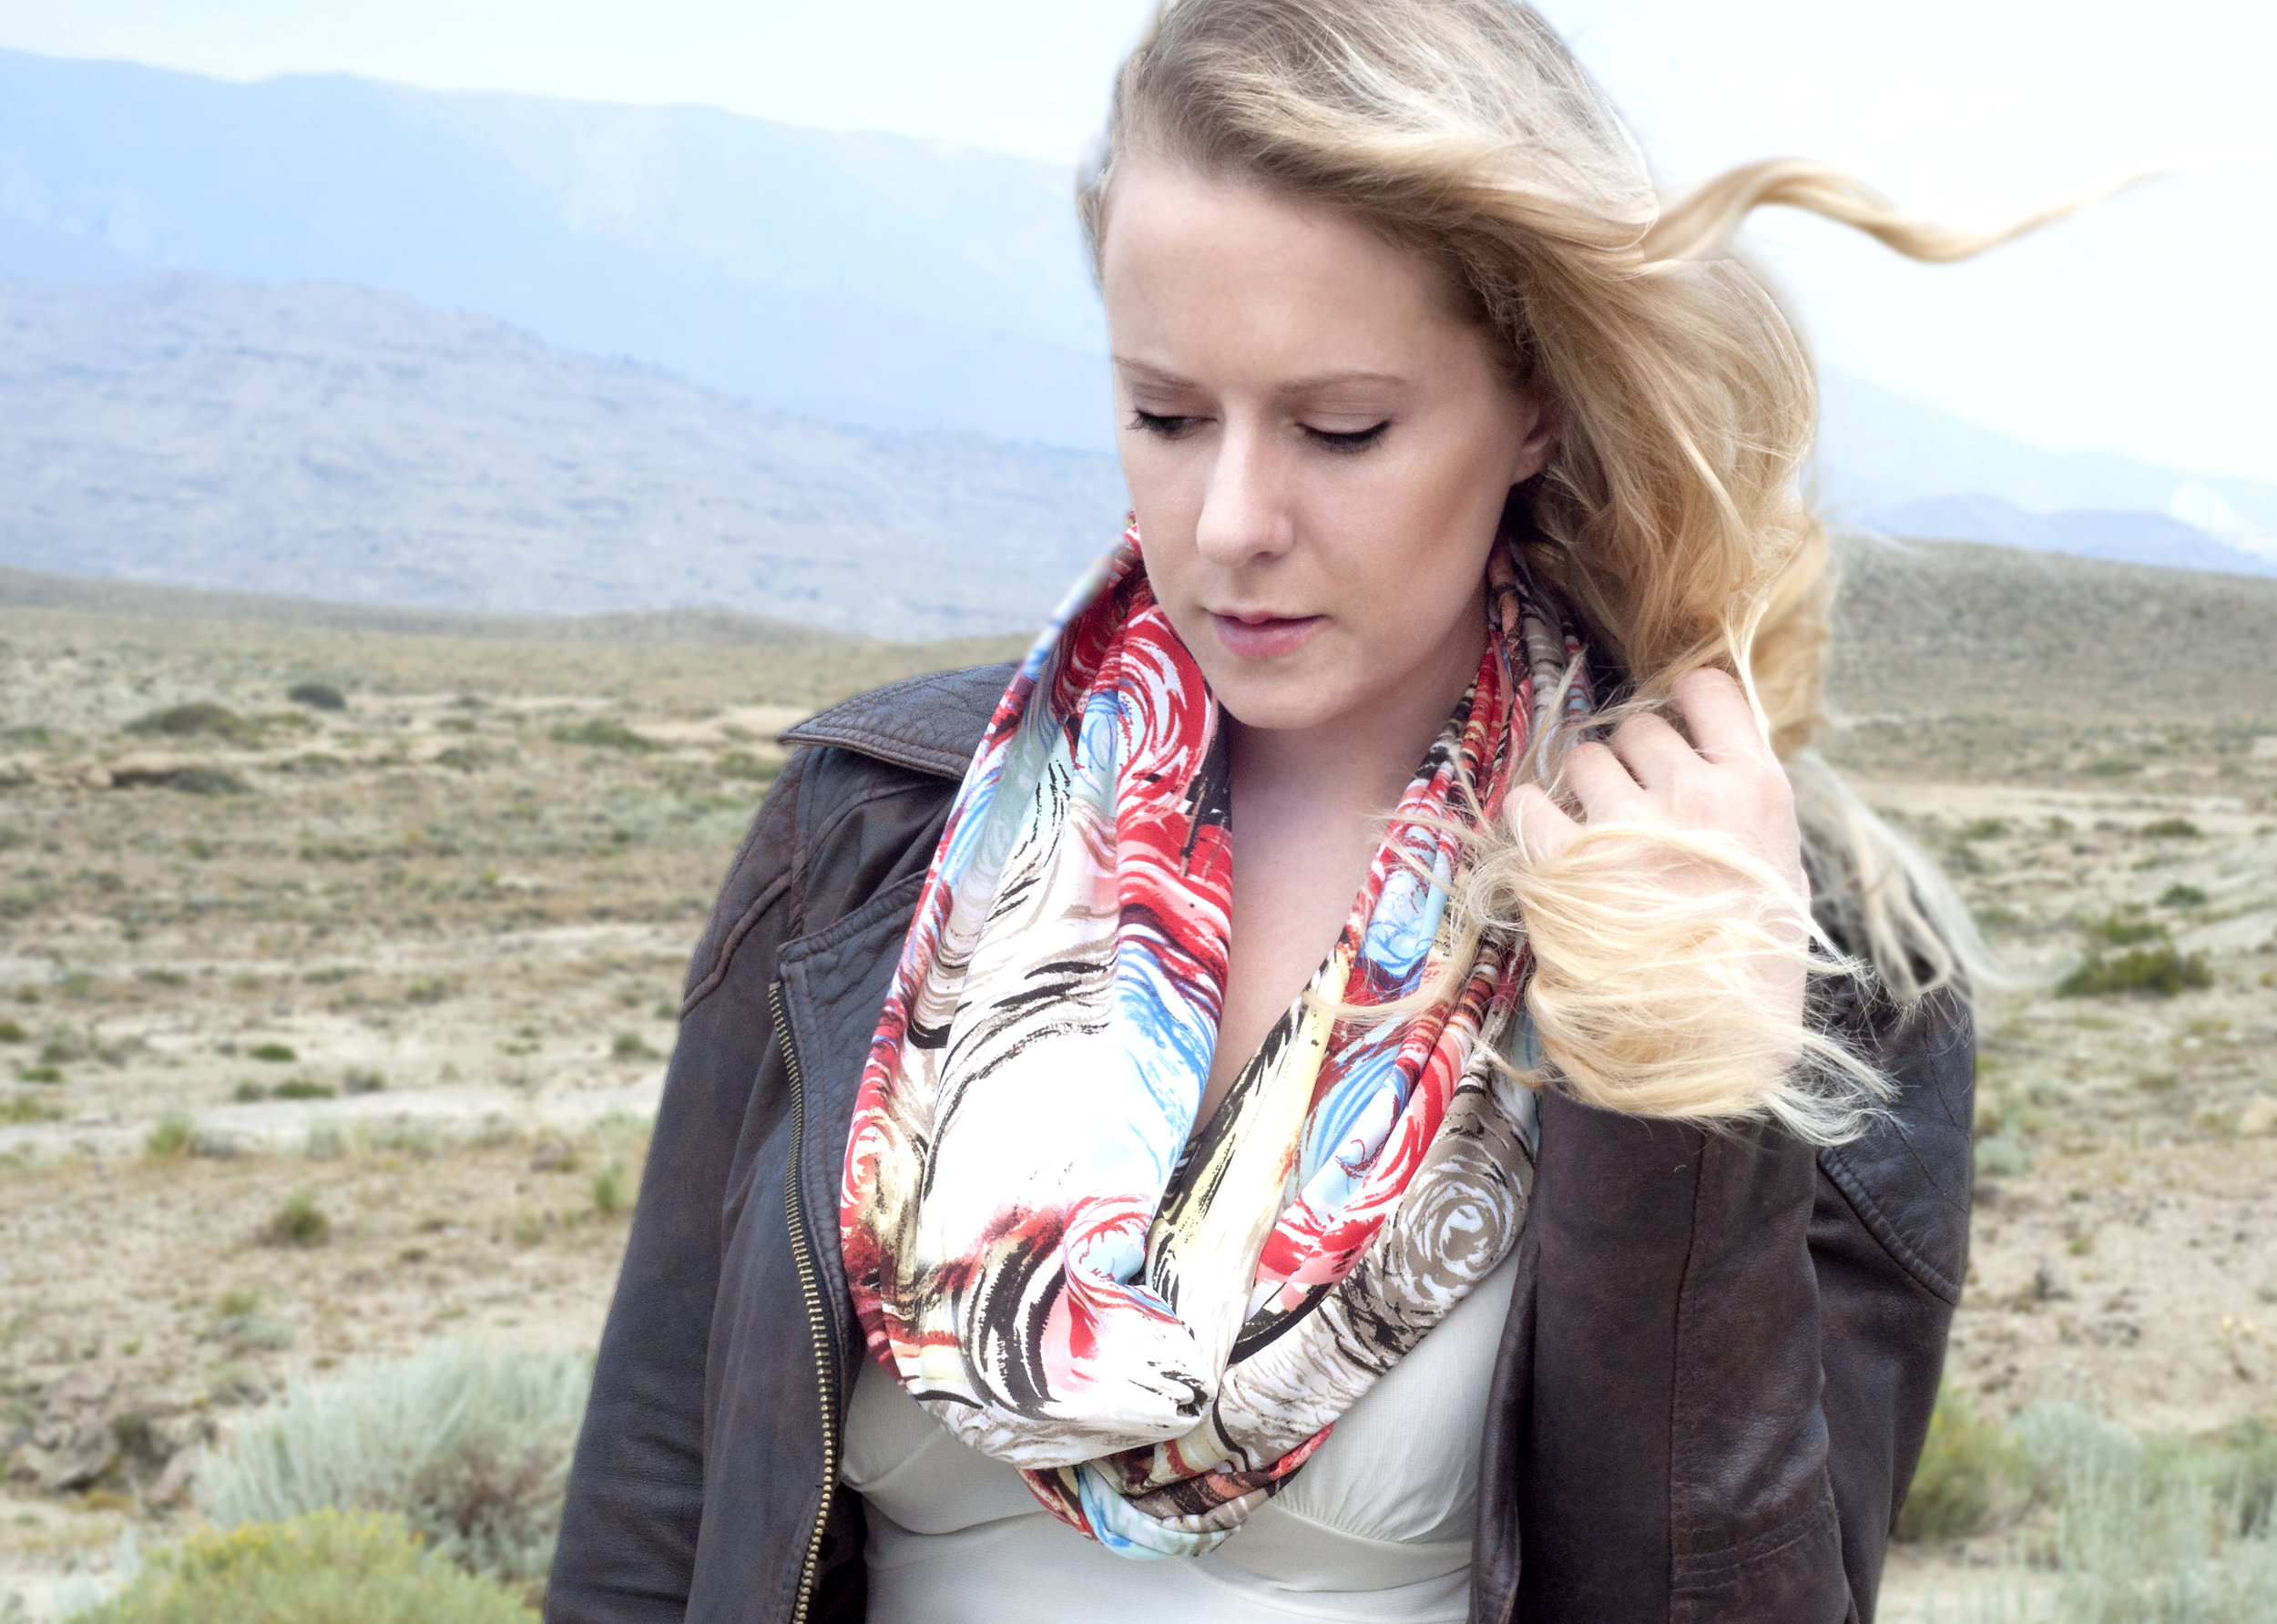 van-gogh-painted-scarf-starry-night-inspired-infinity-scarves-long-forgotten-cotton-paint.jpg